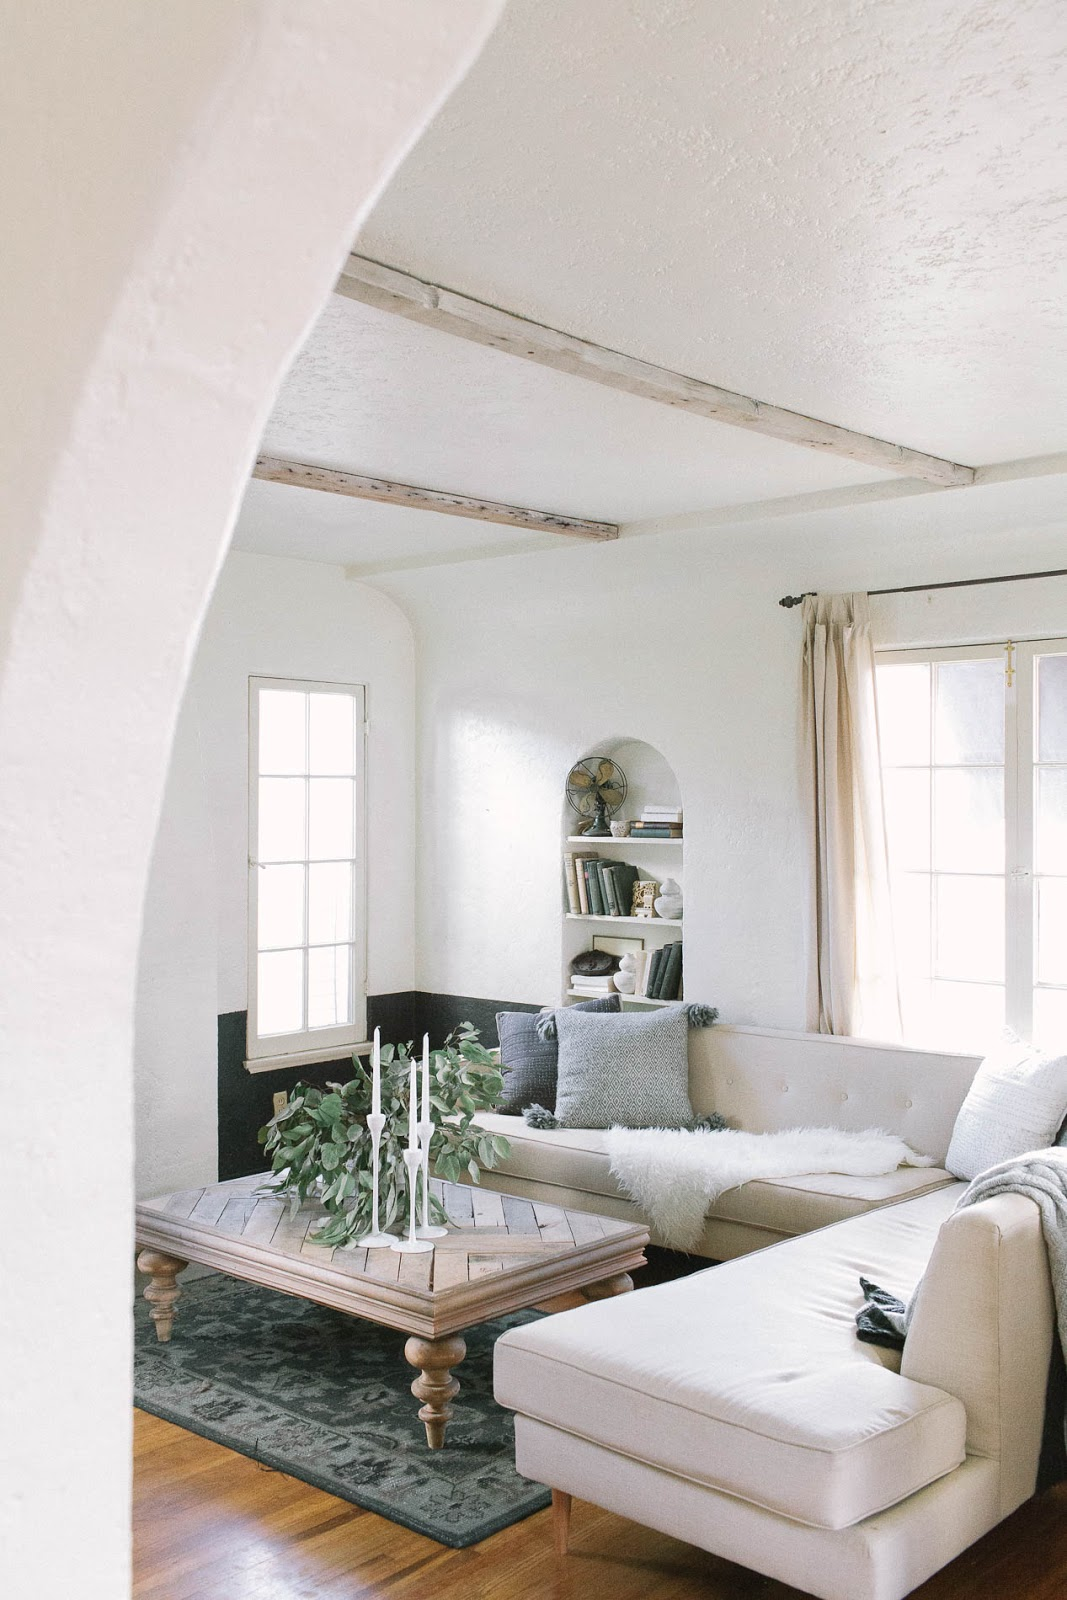 A Charming Bungalow In Los Angeles: LE BLOG MADEMOISELLE: A CHARMING COTTAGE IN CALIFORNIA